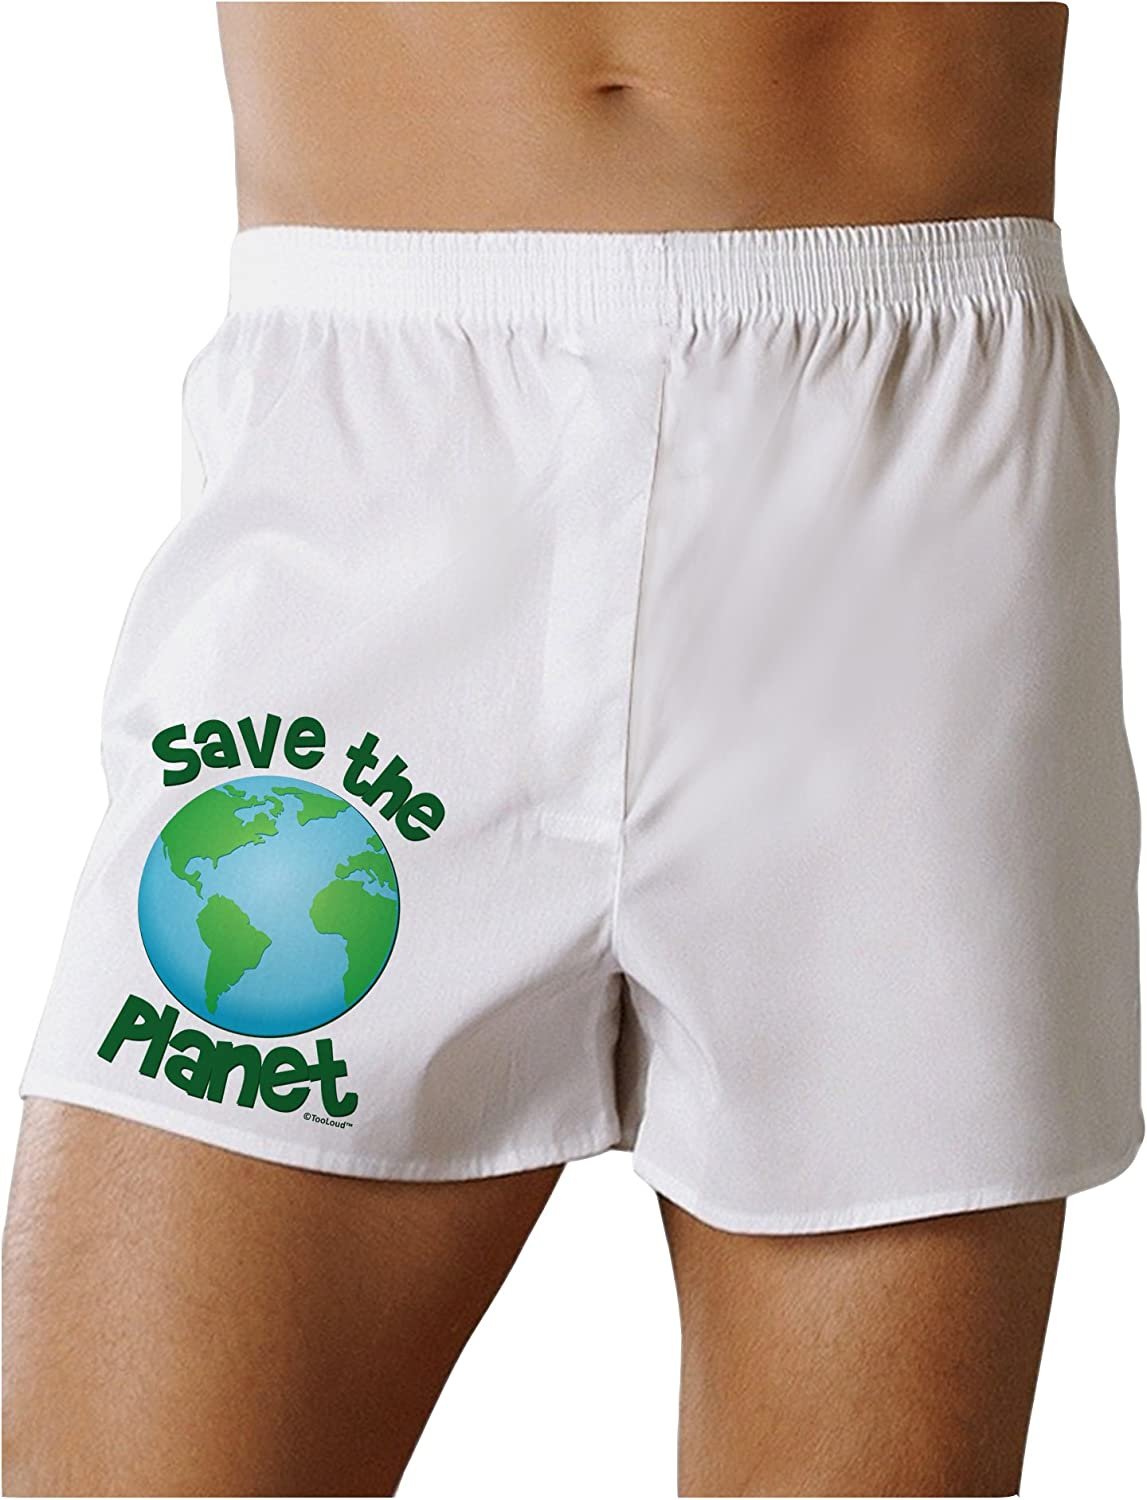 Earth Boxers Shorts TOOLOUD Save The Planet